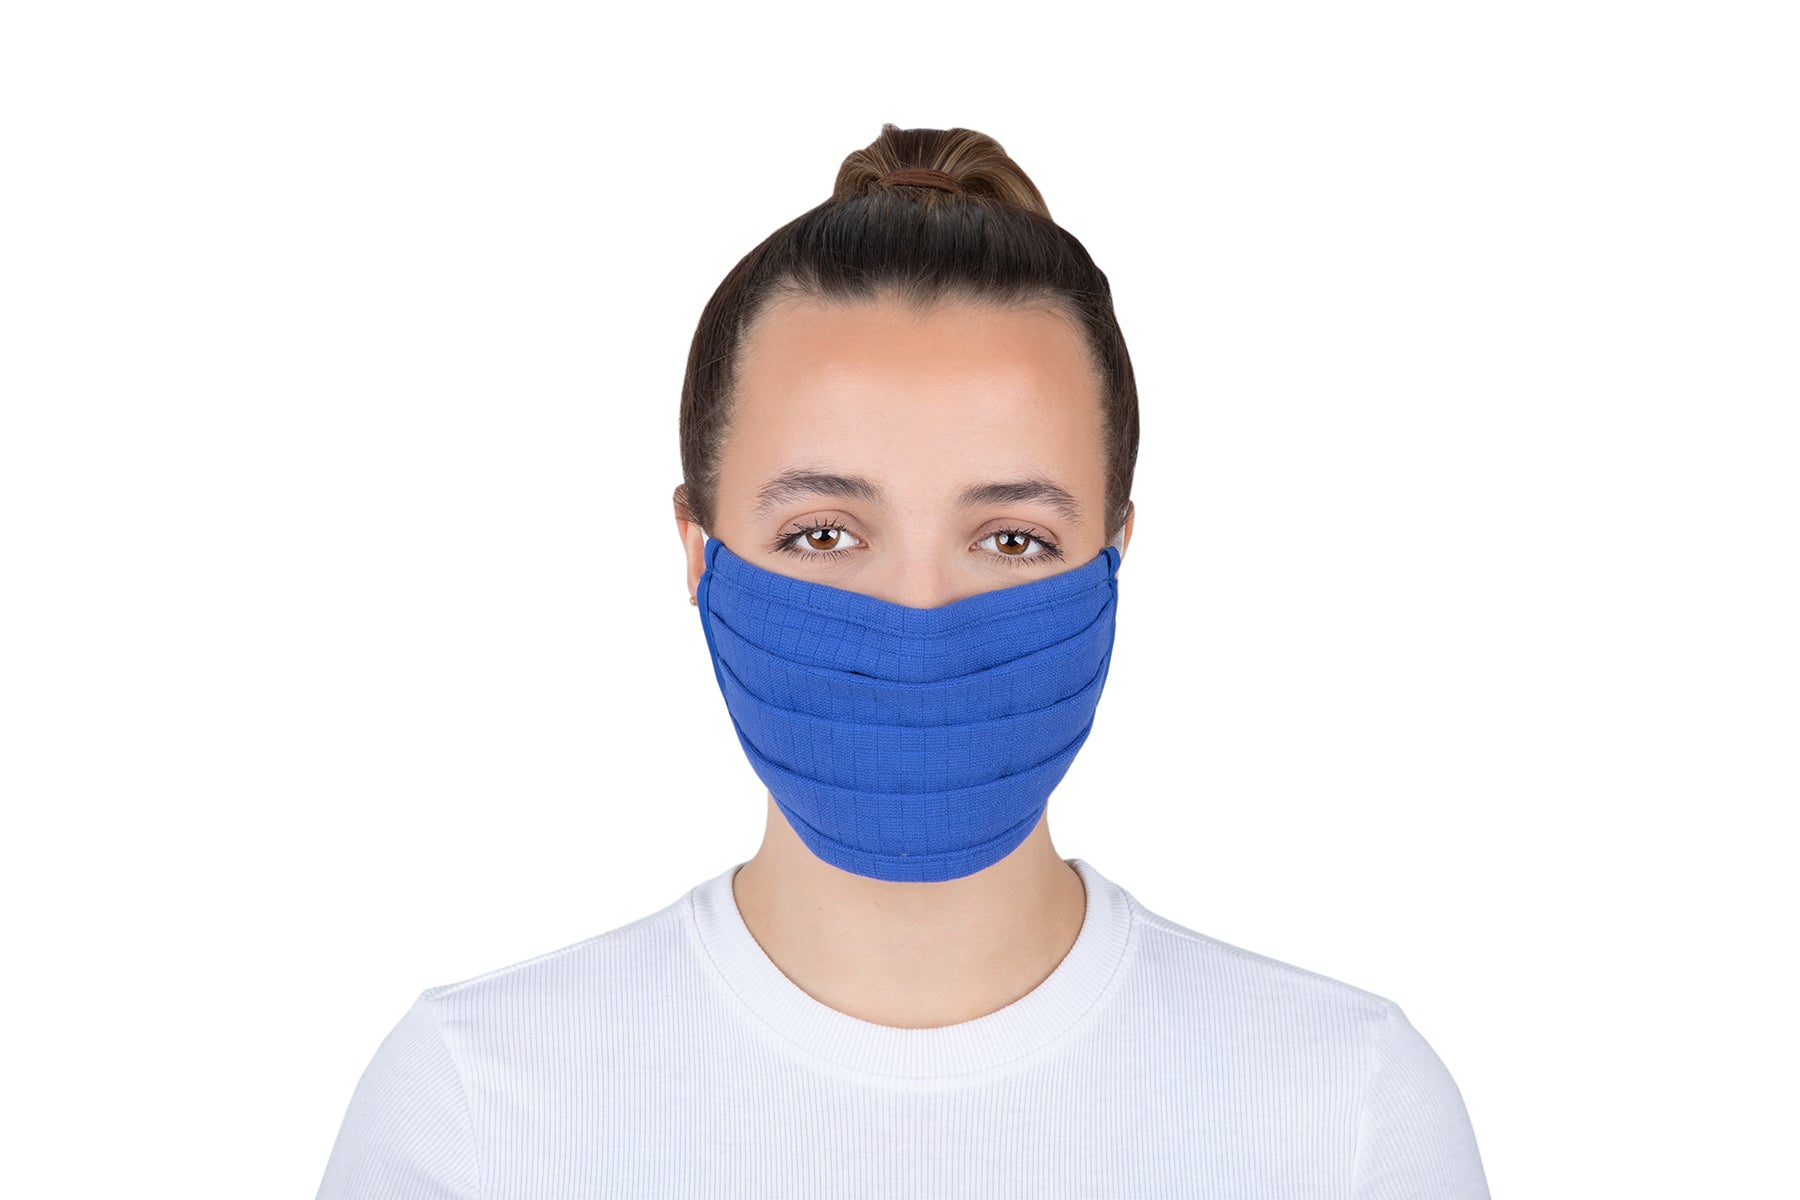 Royal blue cotton face covering